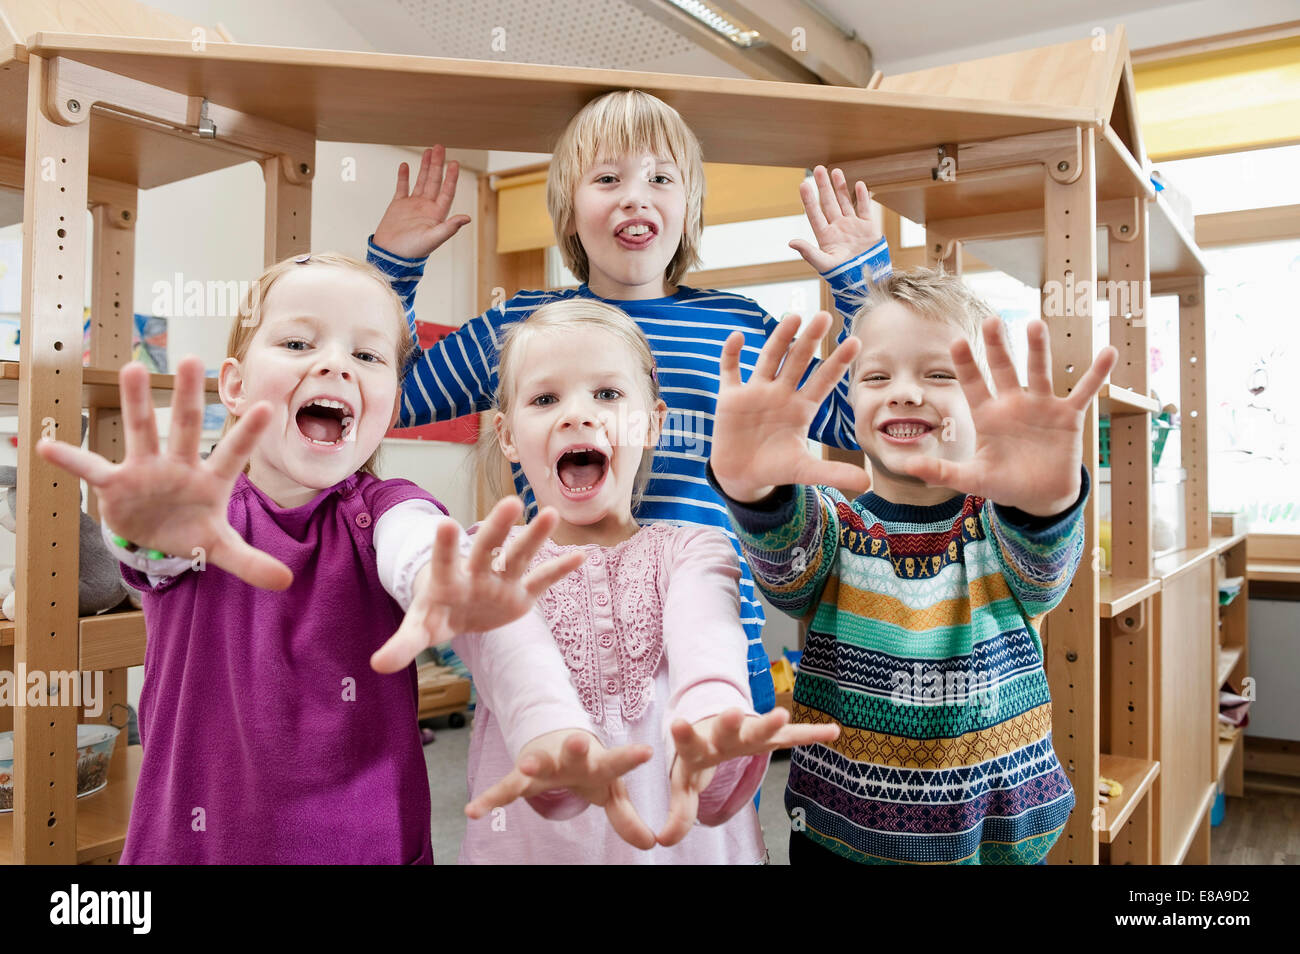 Four children with outstretched arms screaming - Stock Image